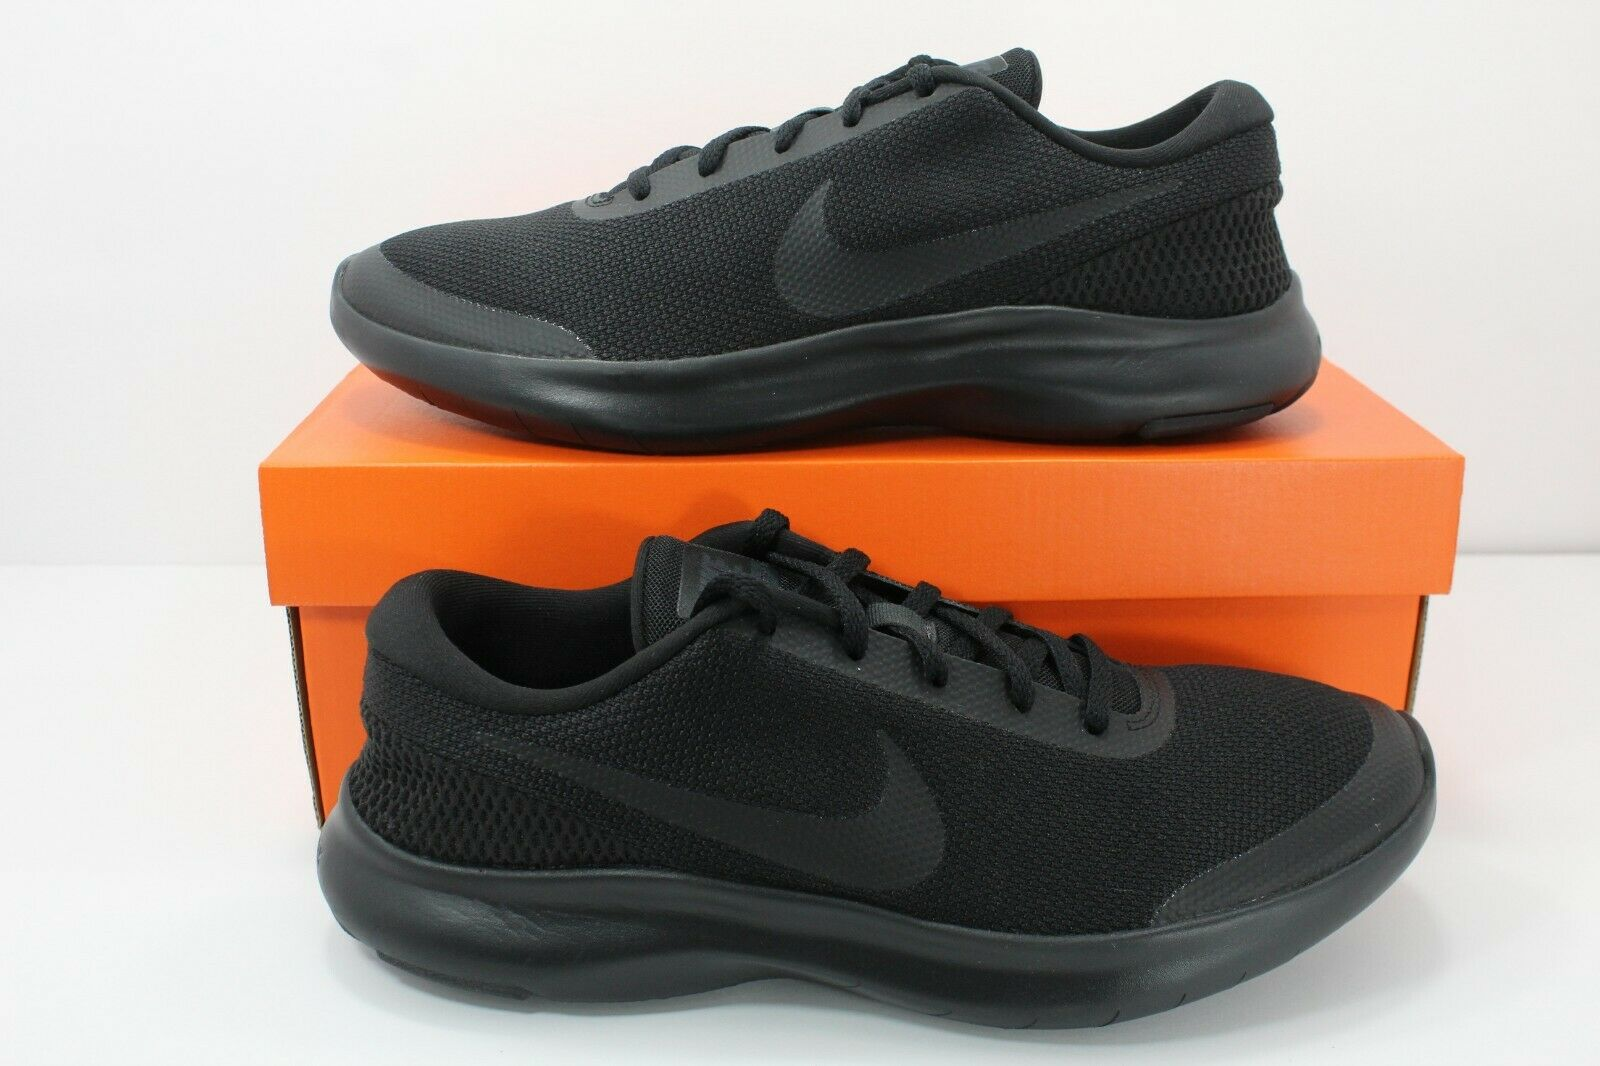 a5f20a88a1d45 ... New Nike Flex Experience RN 7 Running shoes shoes shoes Black 908985-002  Men s Size ...